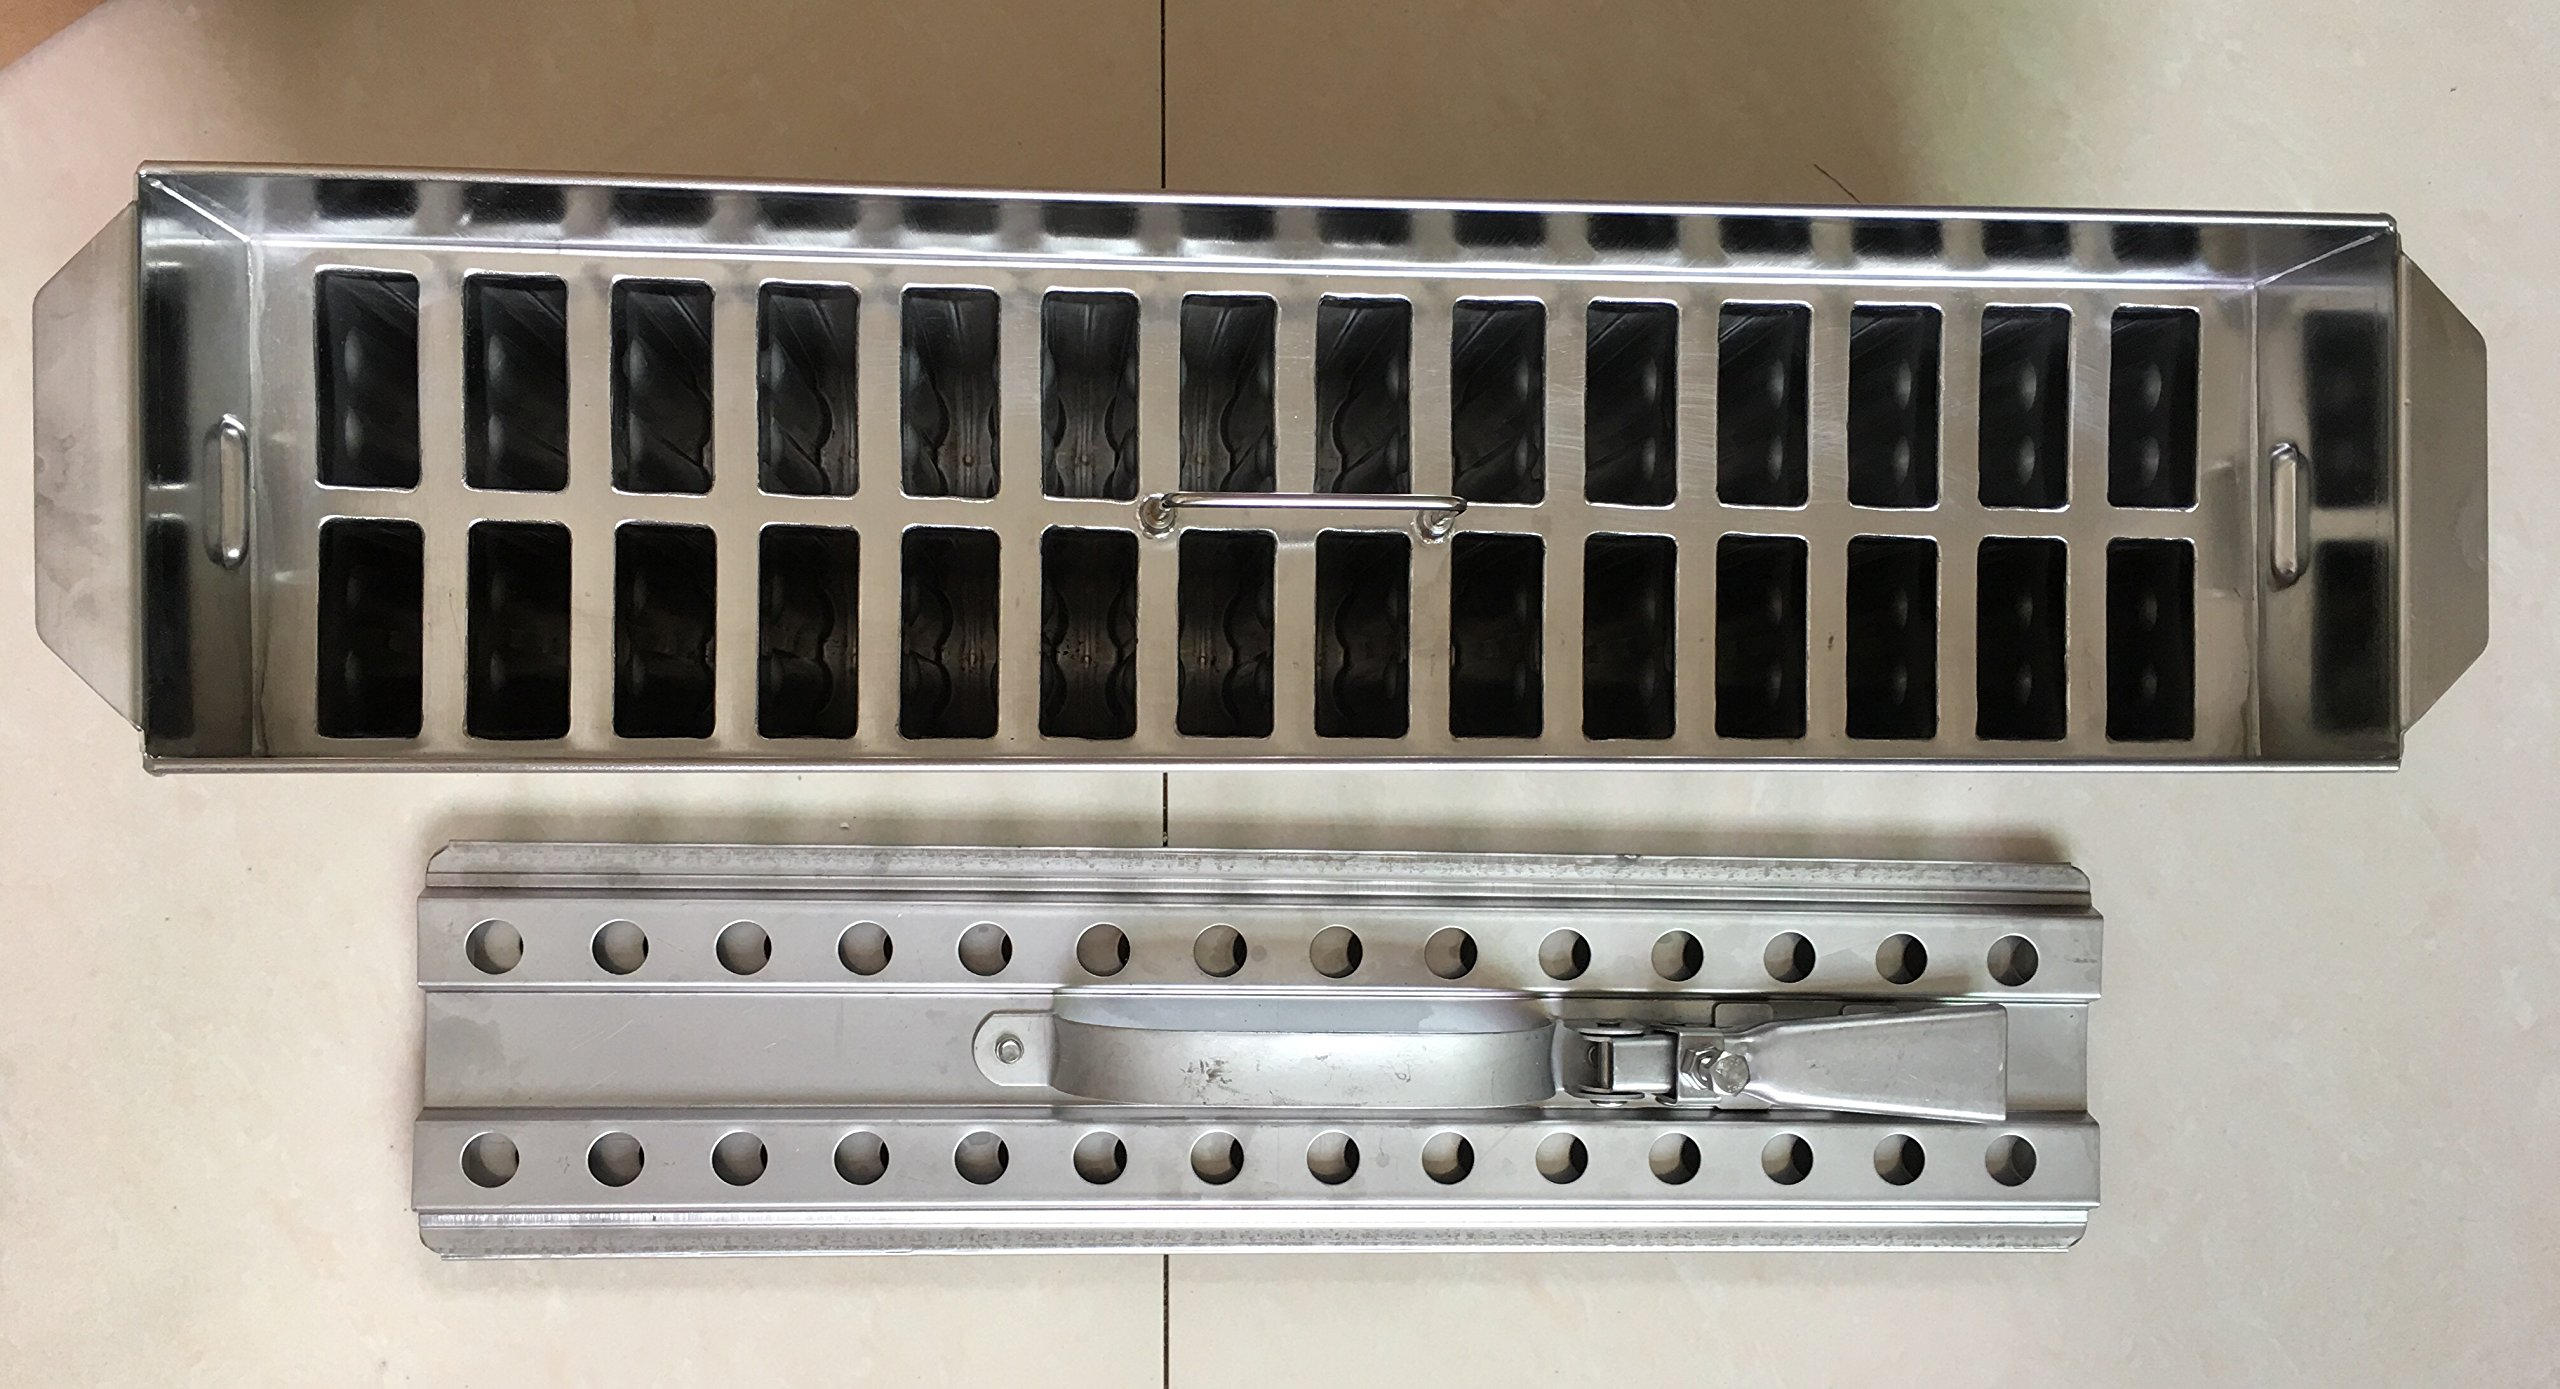 63ml Stainless steel ice cream molds ataforma type 2x14 28mold 63ml brida including stick extractor by Ykchanger